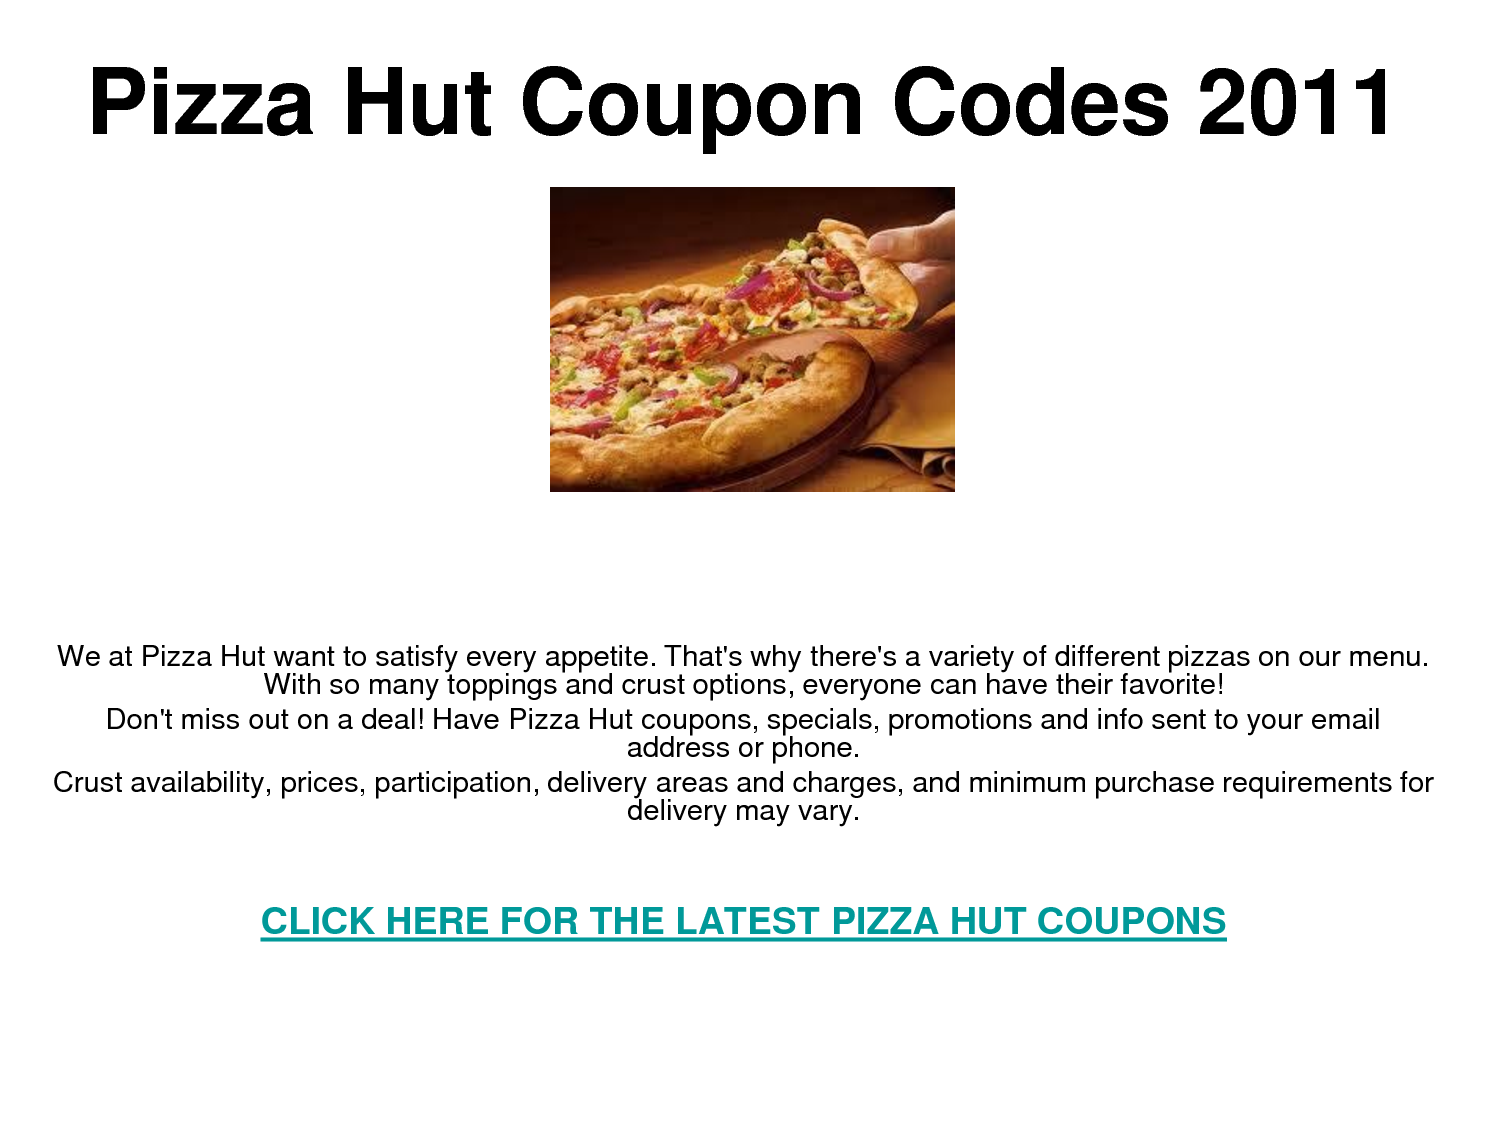 Pizza hut discount coupons for schlitterbahn